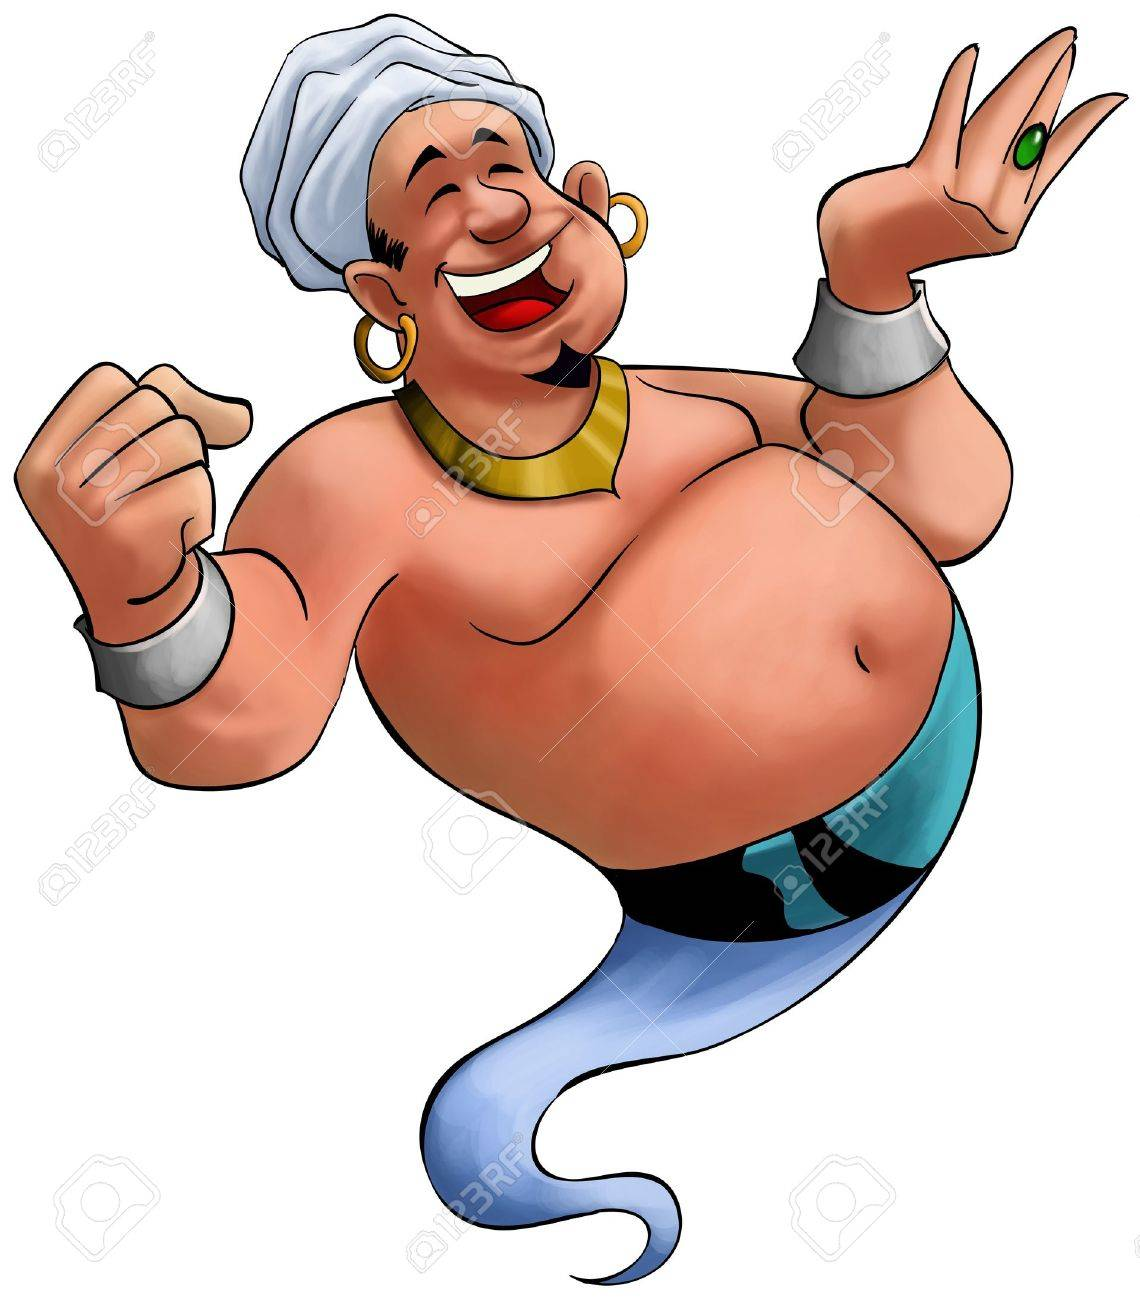 happy fat genie smiley in the moment when he appears Stock Photo - 9022513